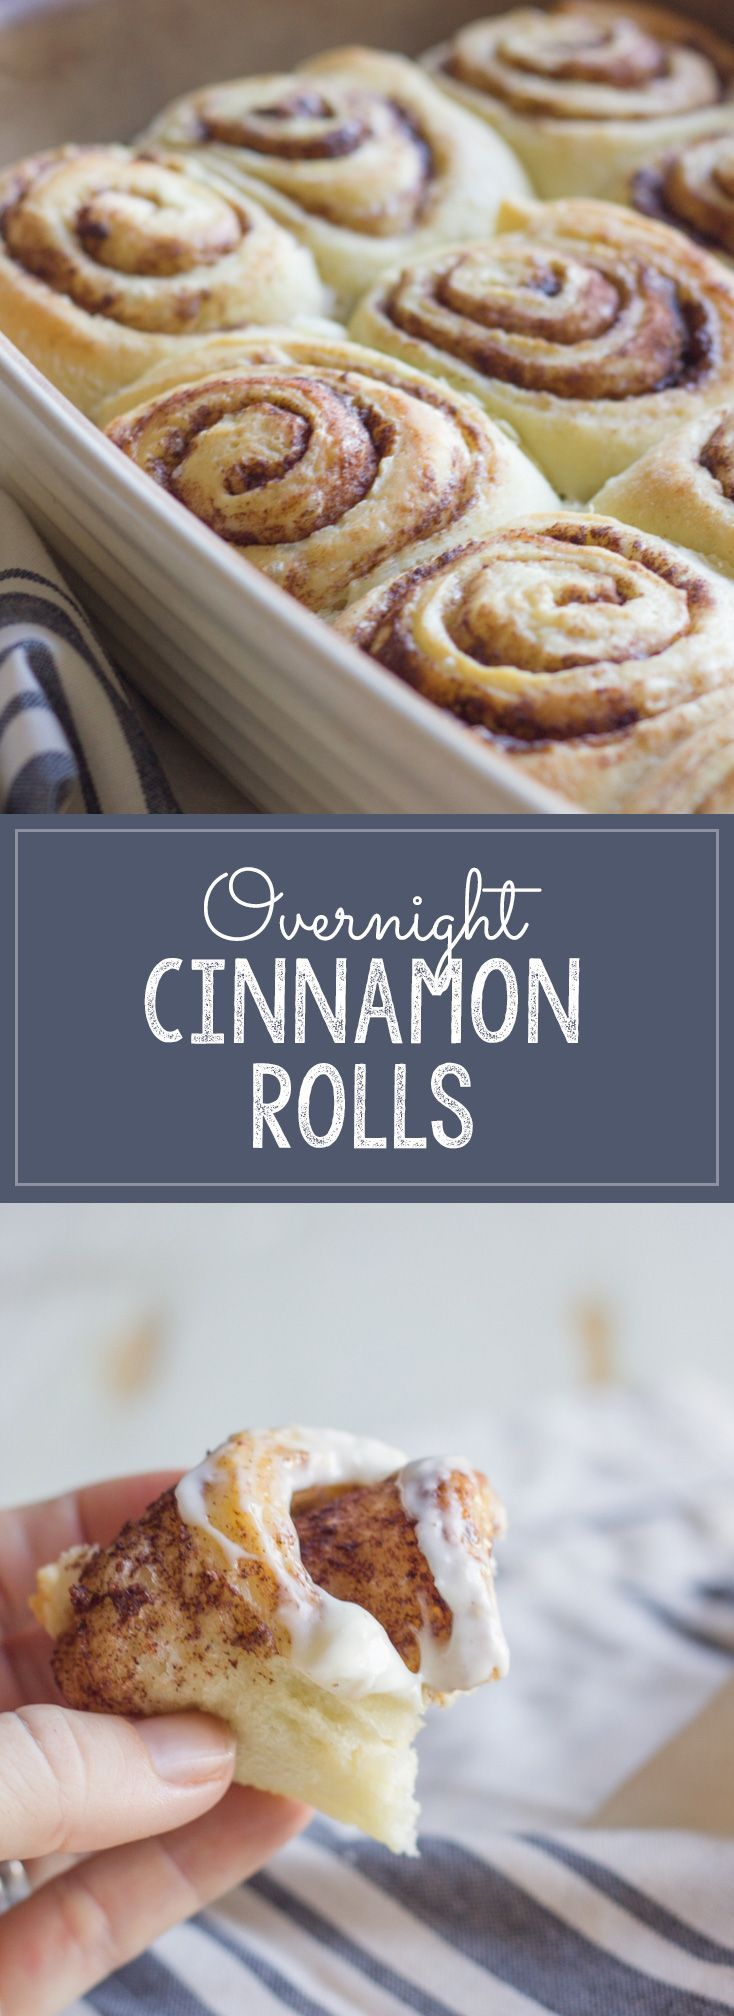 Overnight Cinnamon Rolls With Cream Cheese Frosting - make them the night before and bake them in the morning! (easy cinnamon rolls overnight)